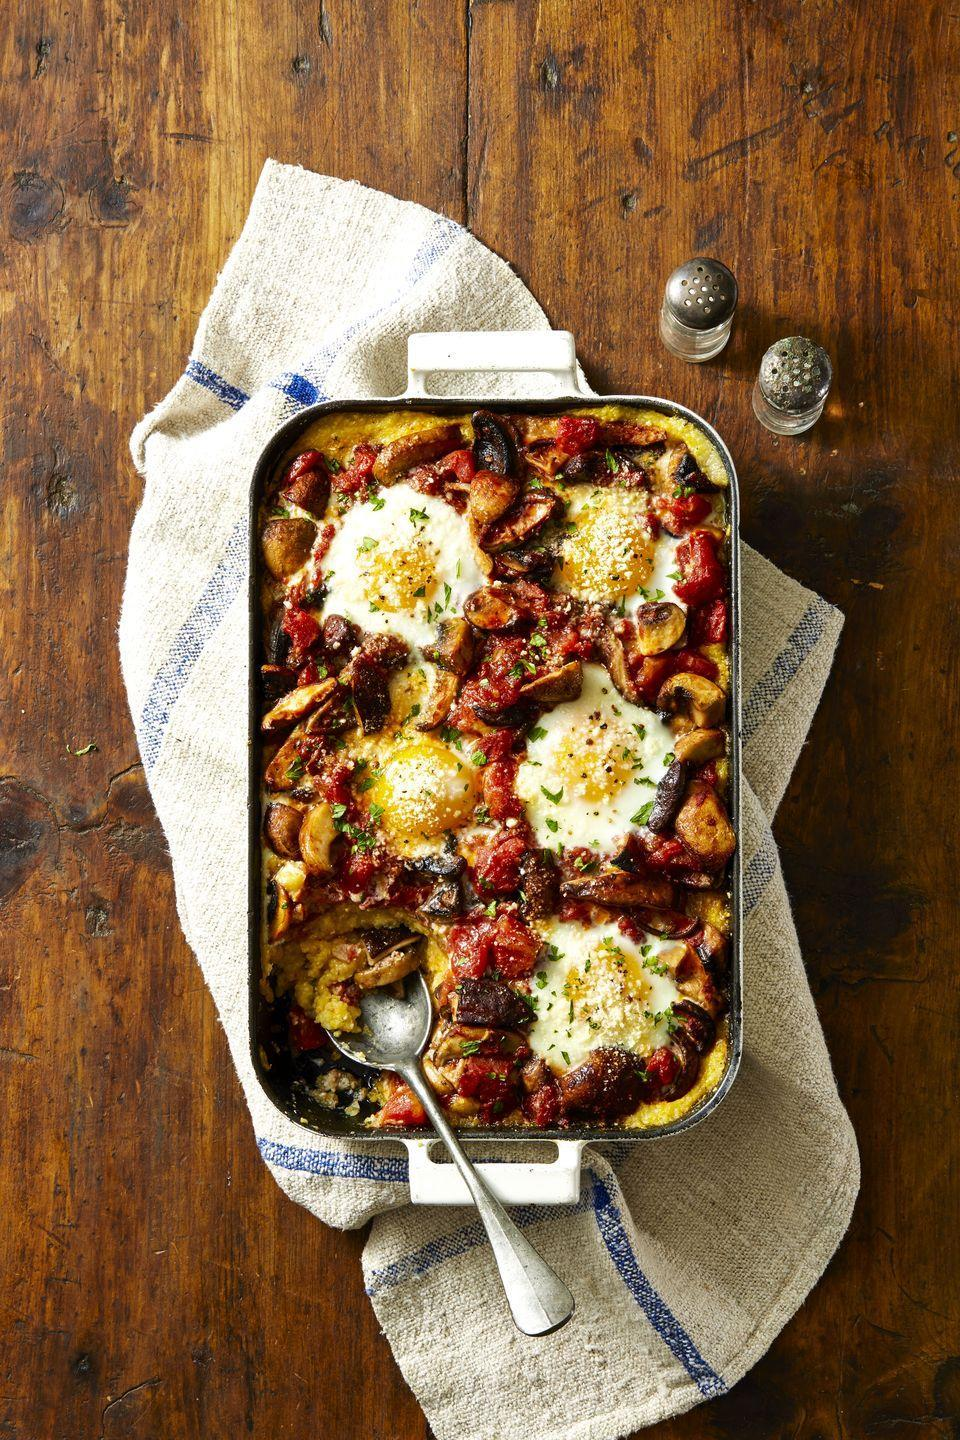 "<p>This bake includes tomatoes, eggs, and mushrooms. Eat it for breakfast, brunch or dinner, you decide. </p><p><em><a href=""https://www.goodhousekeeping.com/food-recipes/a42214/mushroom-ragu-and-polenta-egg-bake-recipe/"" rel=""nofollow noopener"" target=""_blank"" data-ylk=""slk:Get the recipe for Mushroom Ragu and Polenta Egg Bake »"" class=""link rapid-noclick-resp"">Get the recipe for Mushroom Ragu and Polenta Egg Bake » </a></em><br></p>"